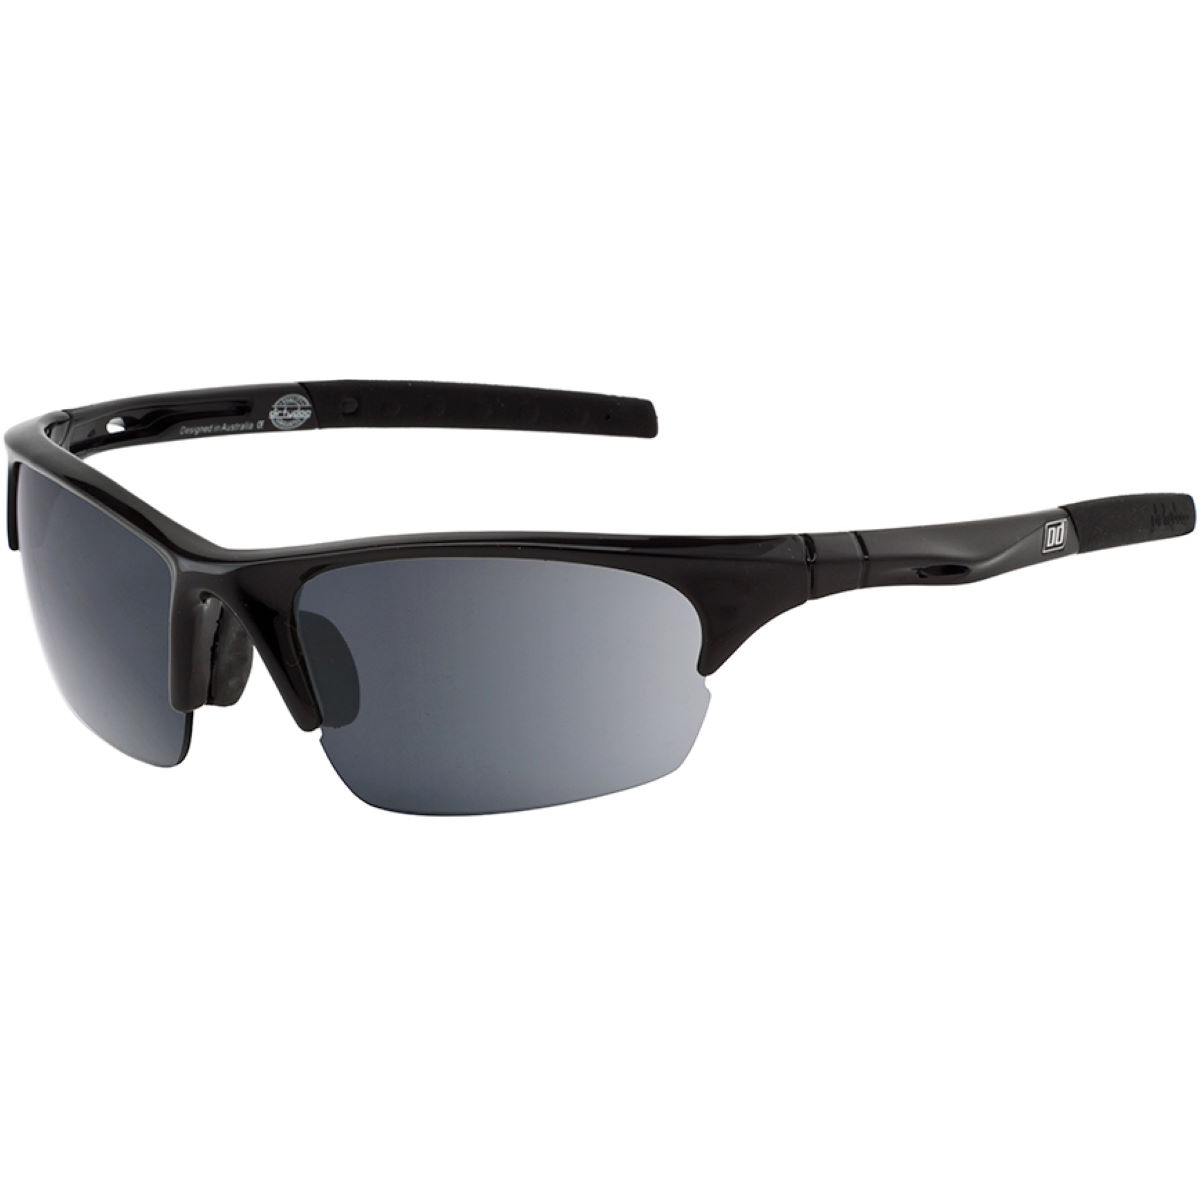 Dirty Dog Ecco Photochromic Sunglasses - Gafas de sol